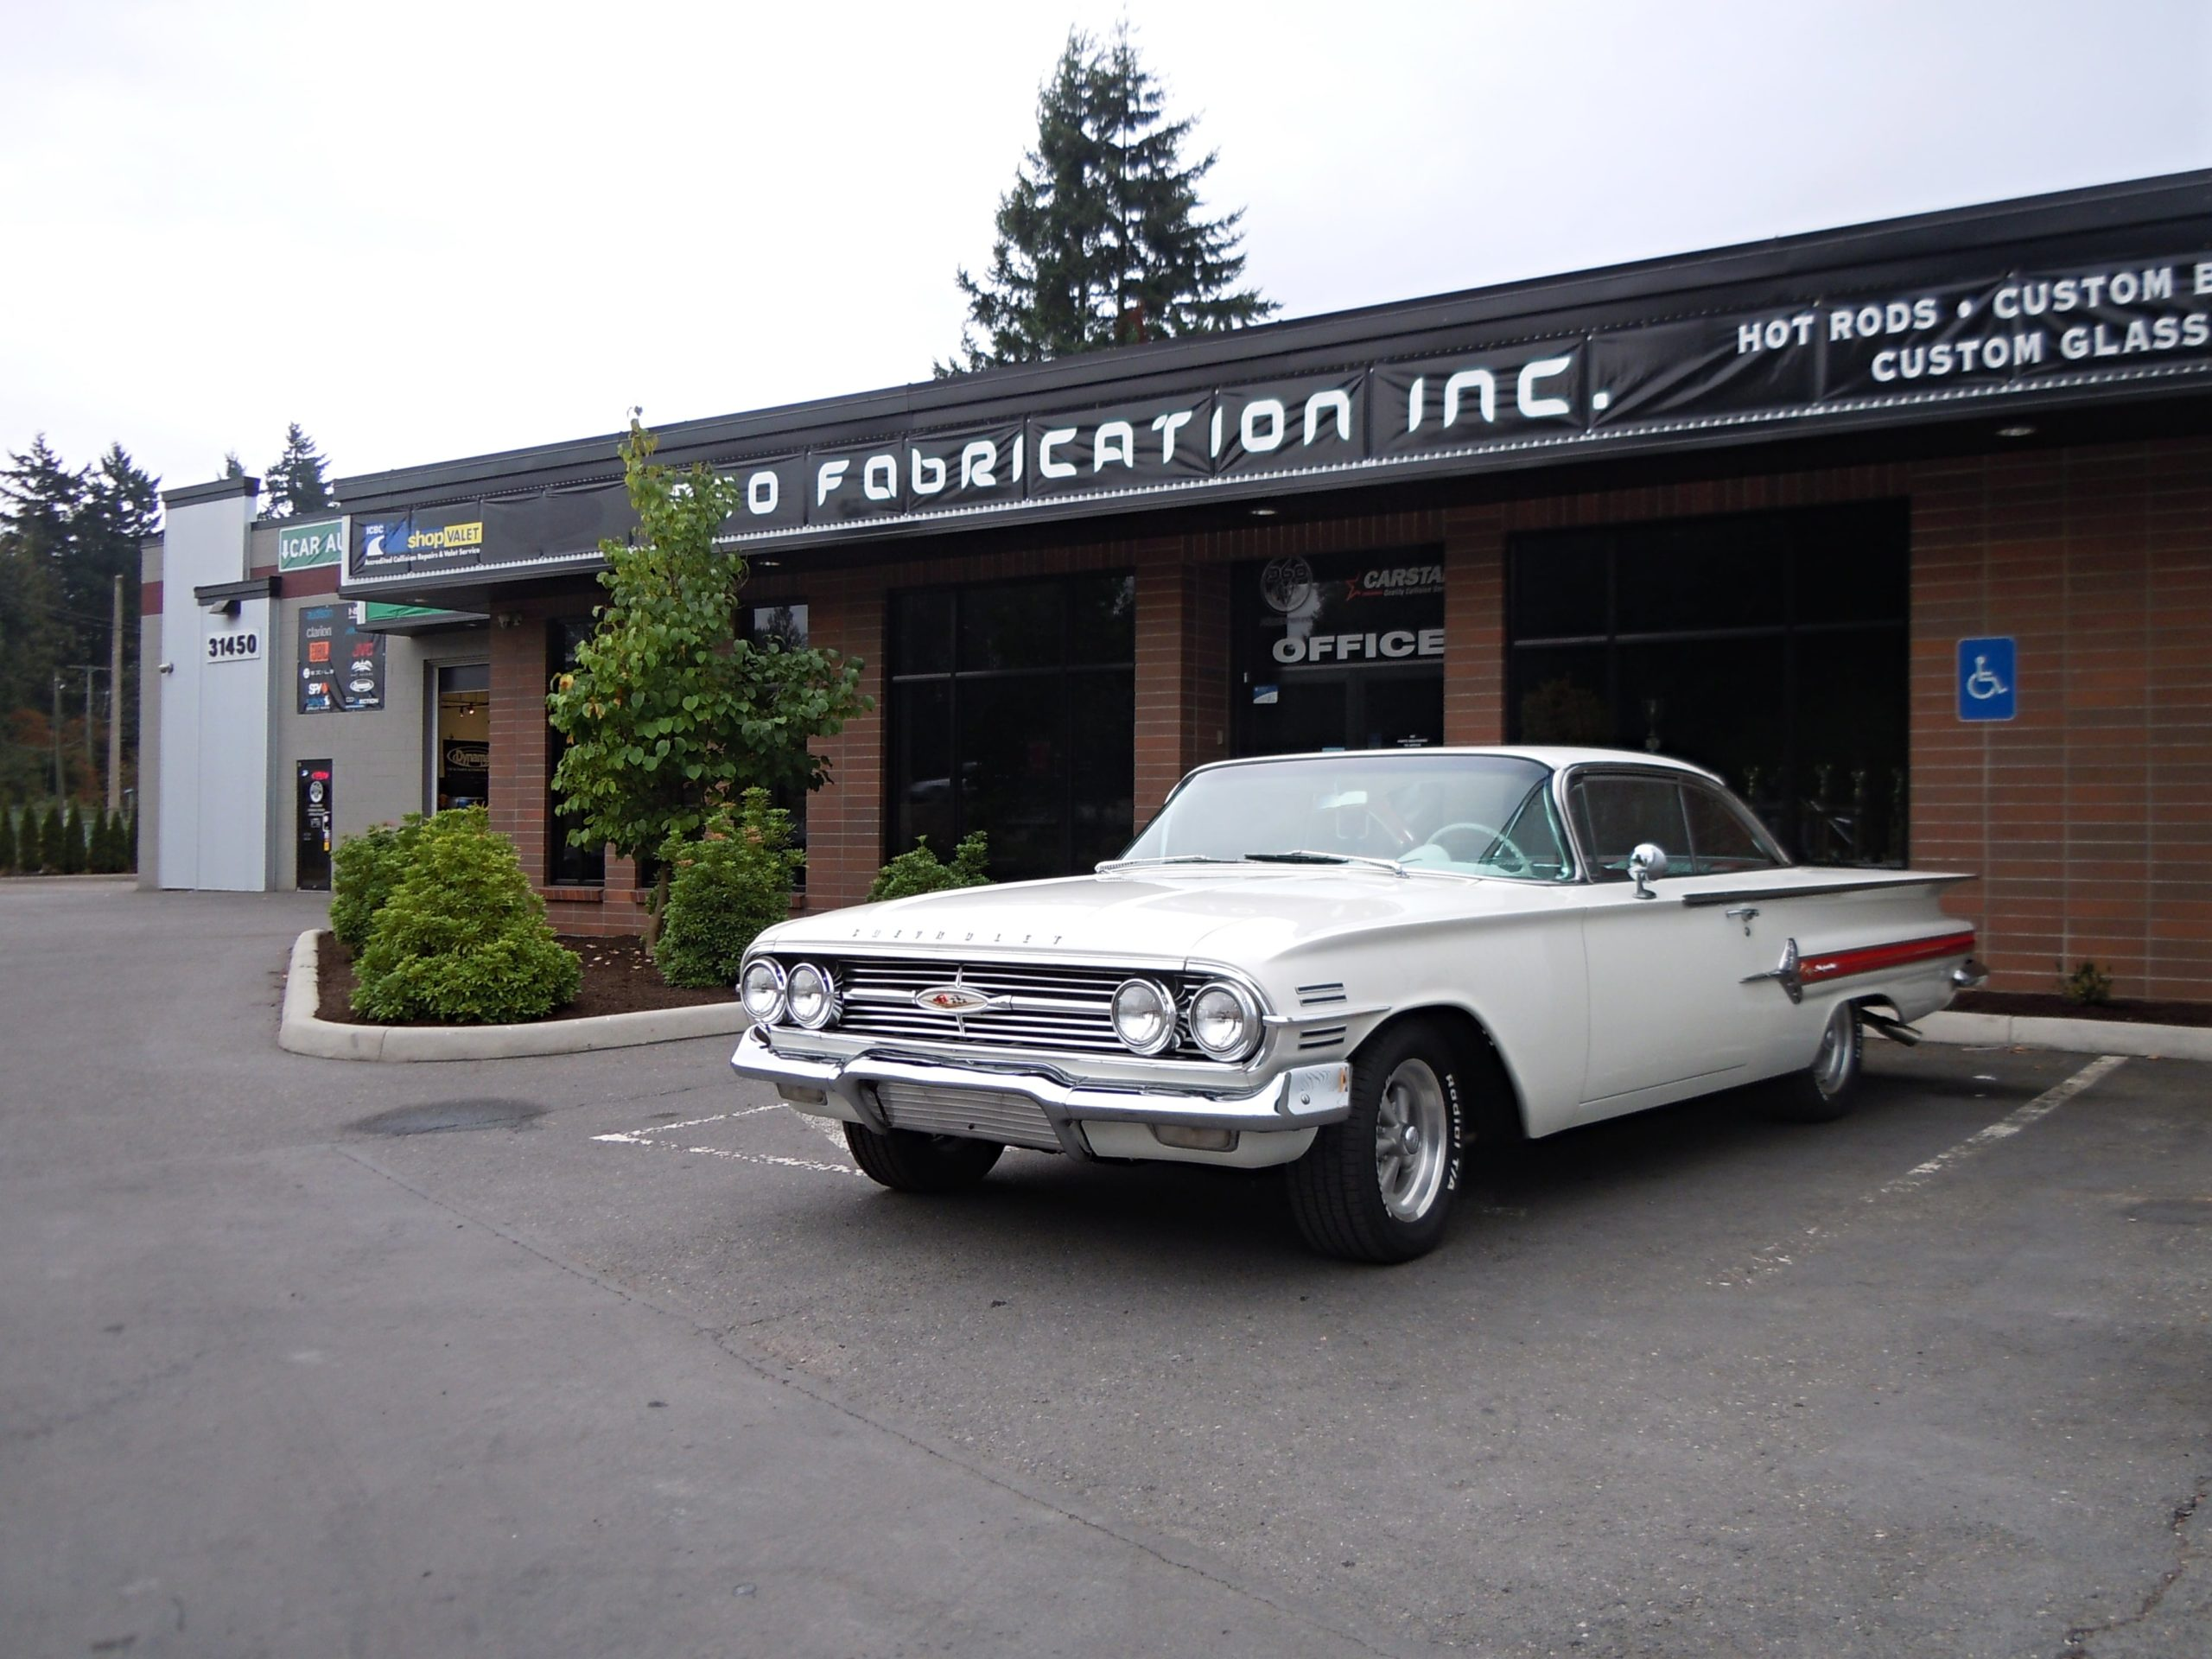 360 Frabrication 1960 Impala 10